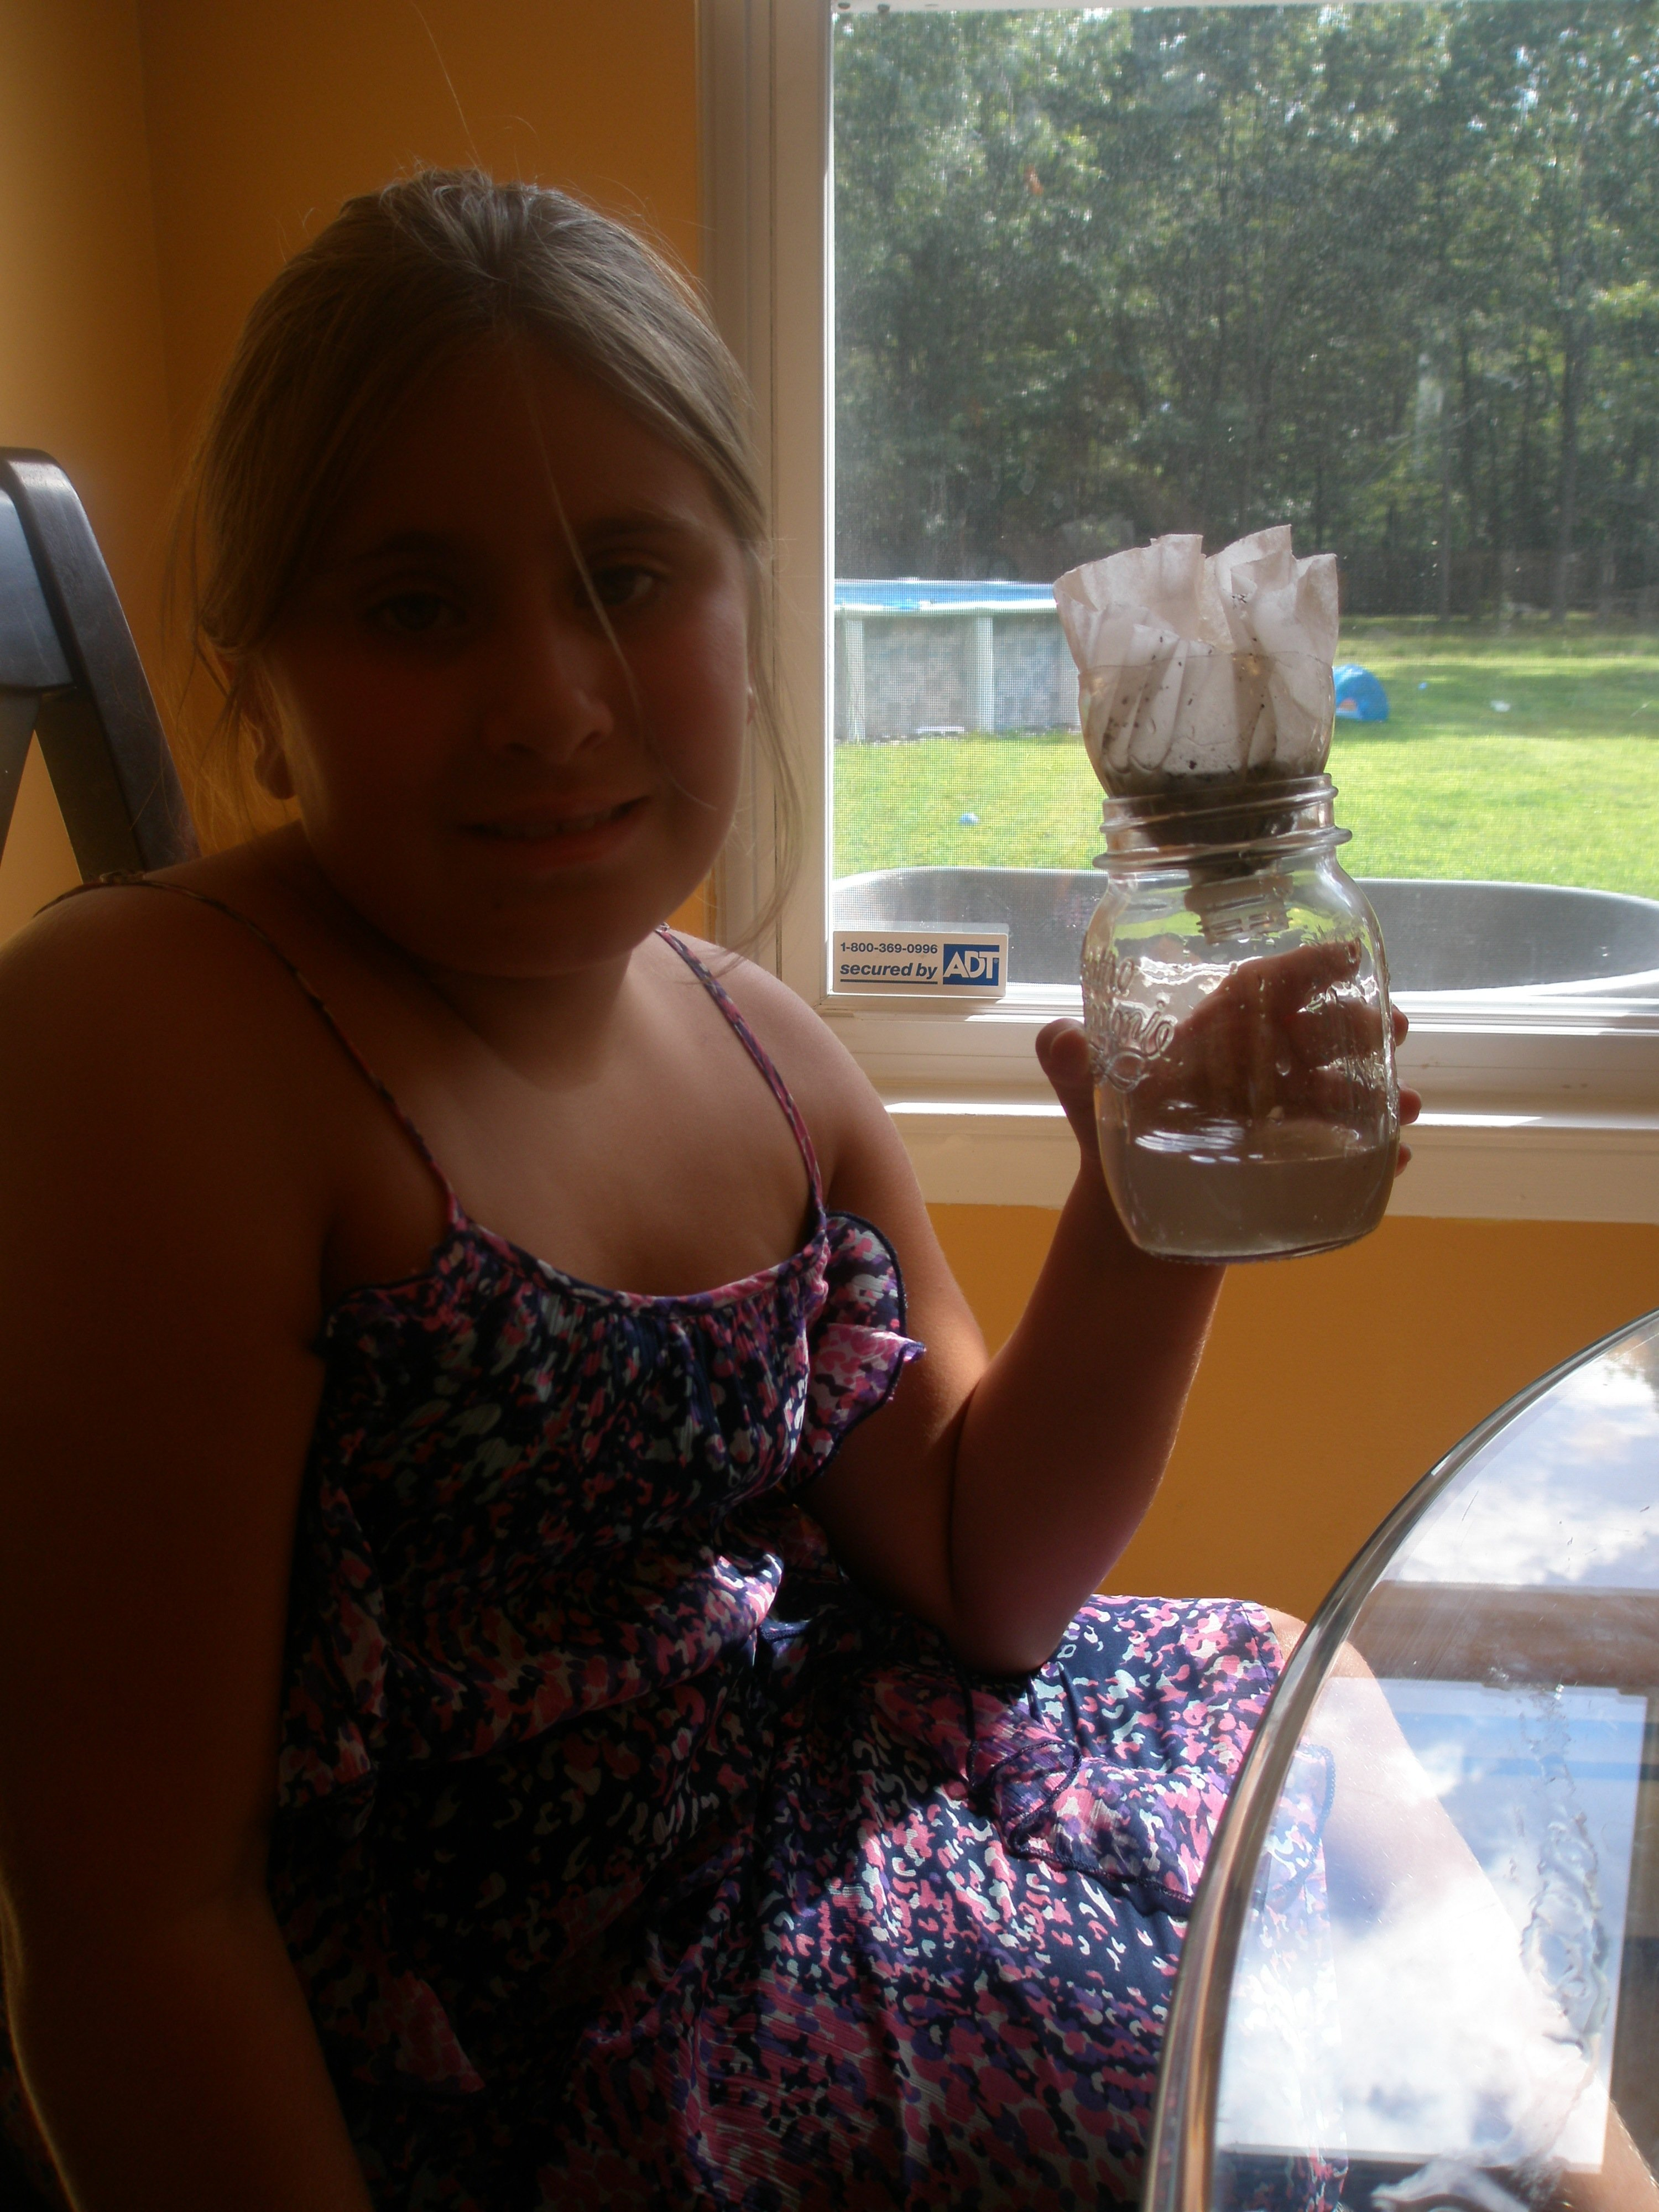 homemade water filter science project. What Happened? Homemade Water Filter Science Project